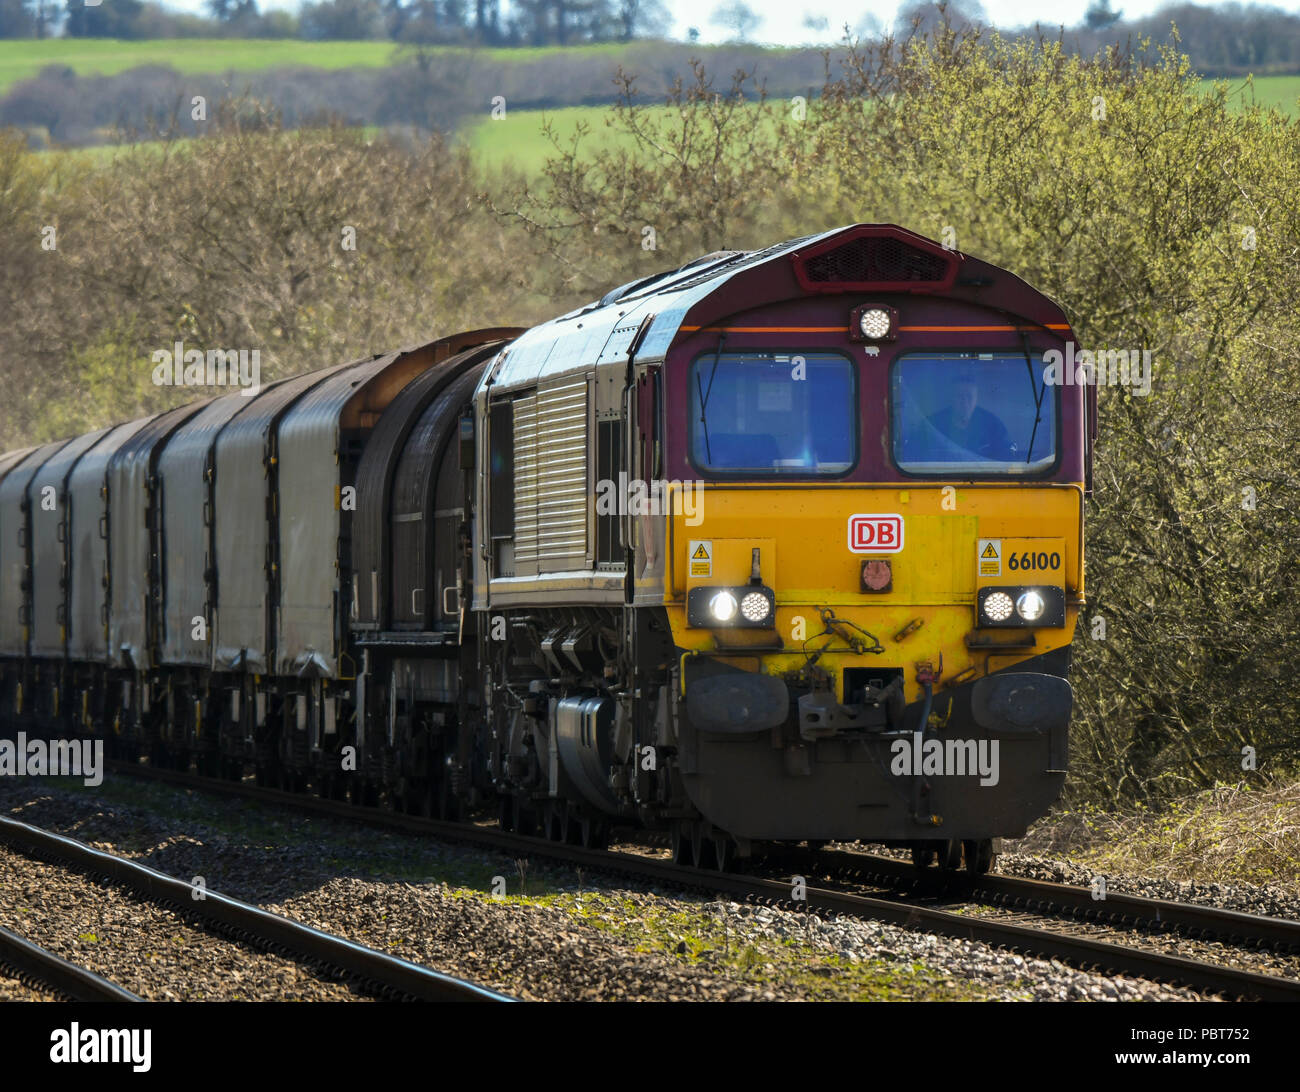 Heavy diesel electric rail freight locomotive hauling a train of wagons - Stock Image